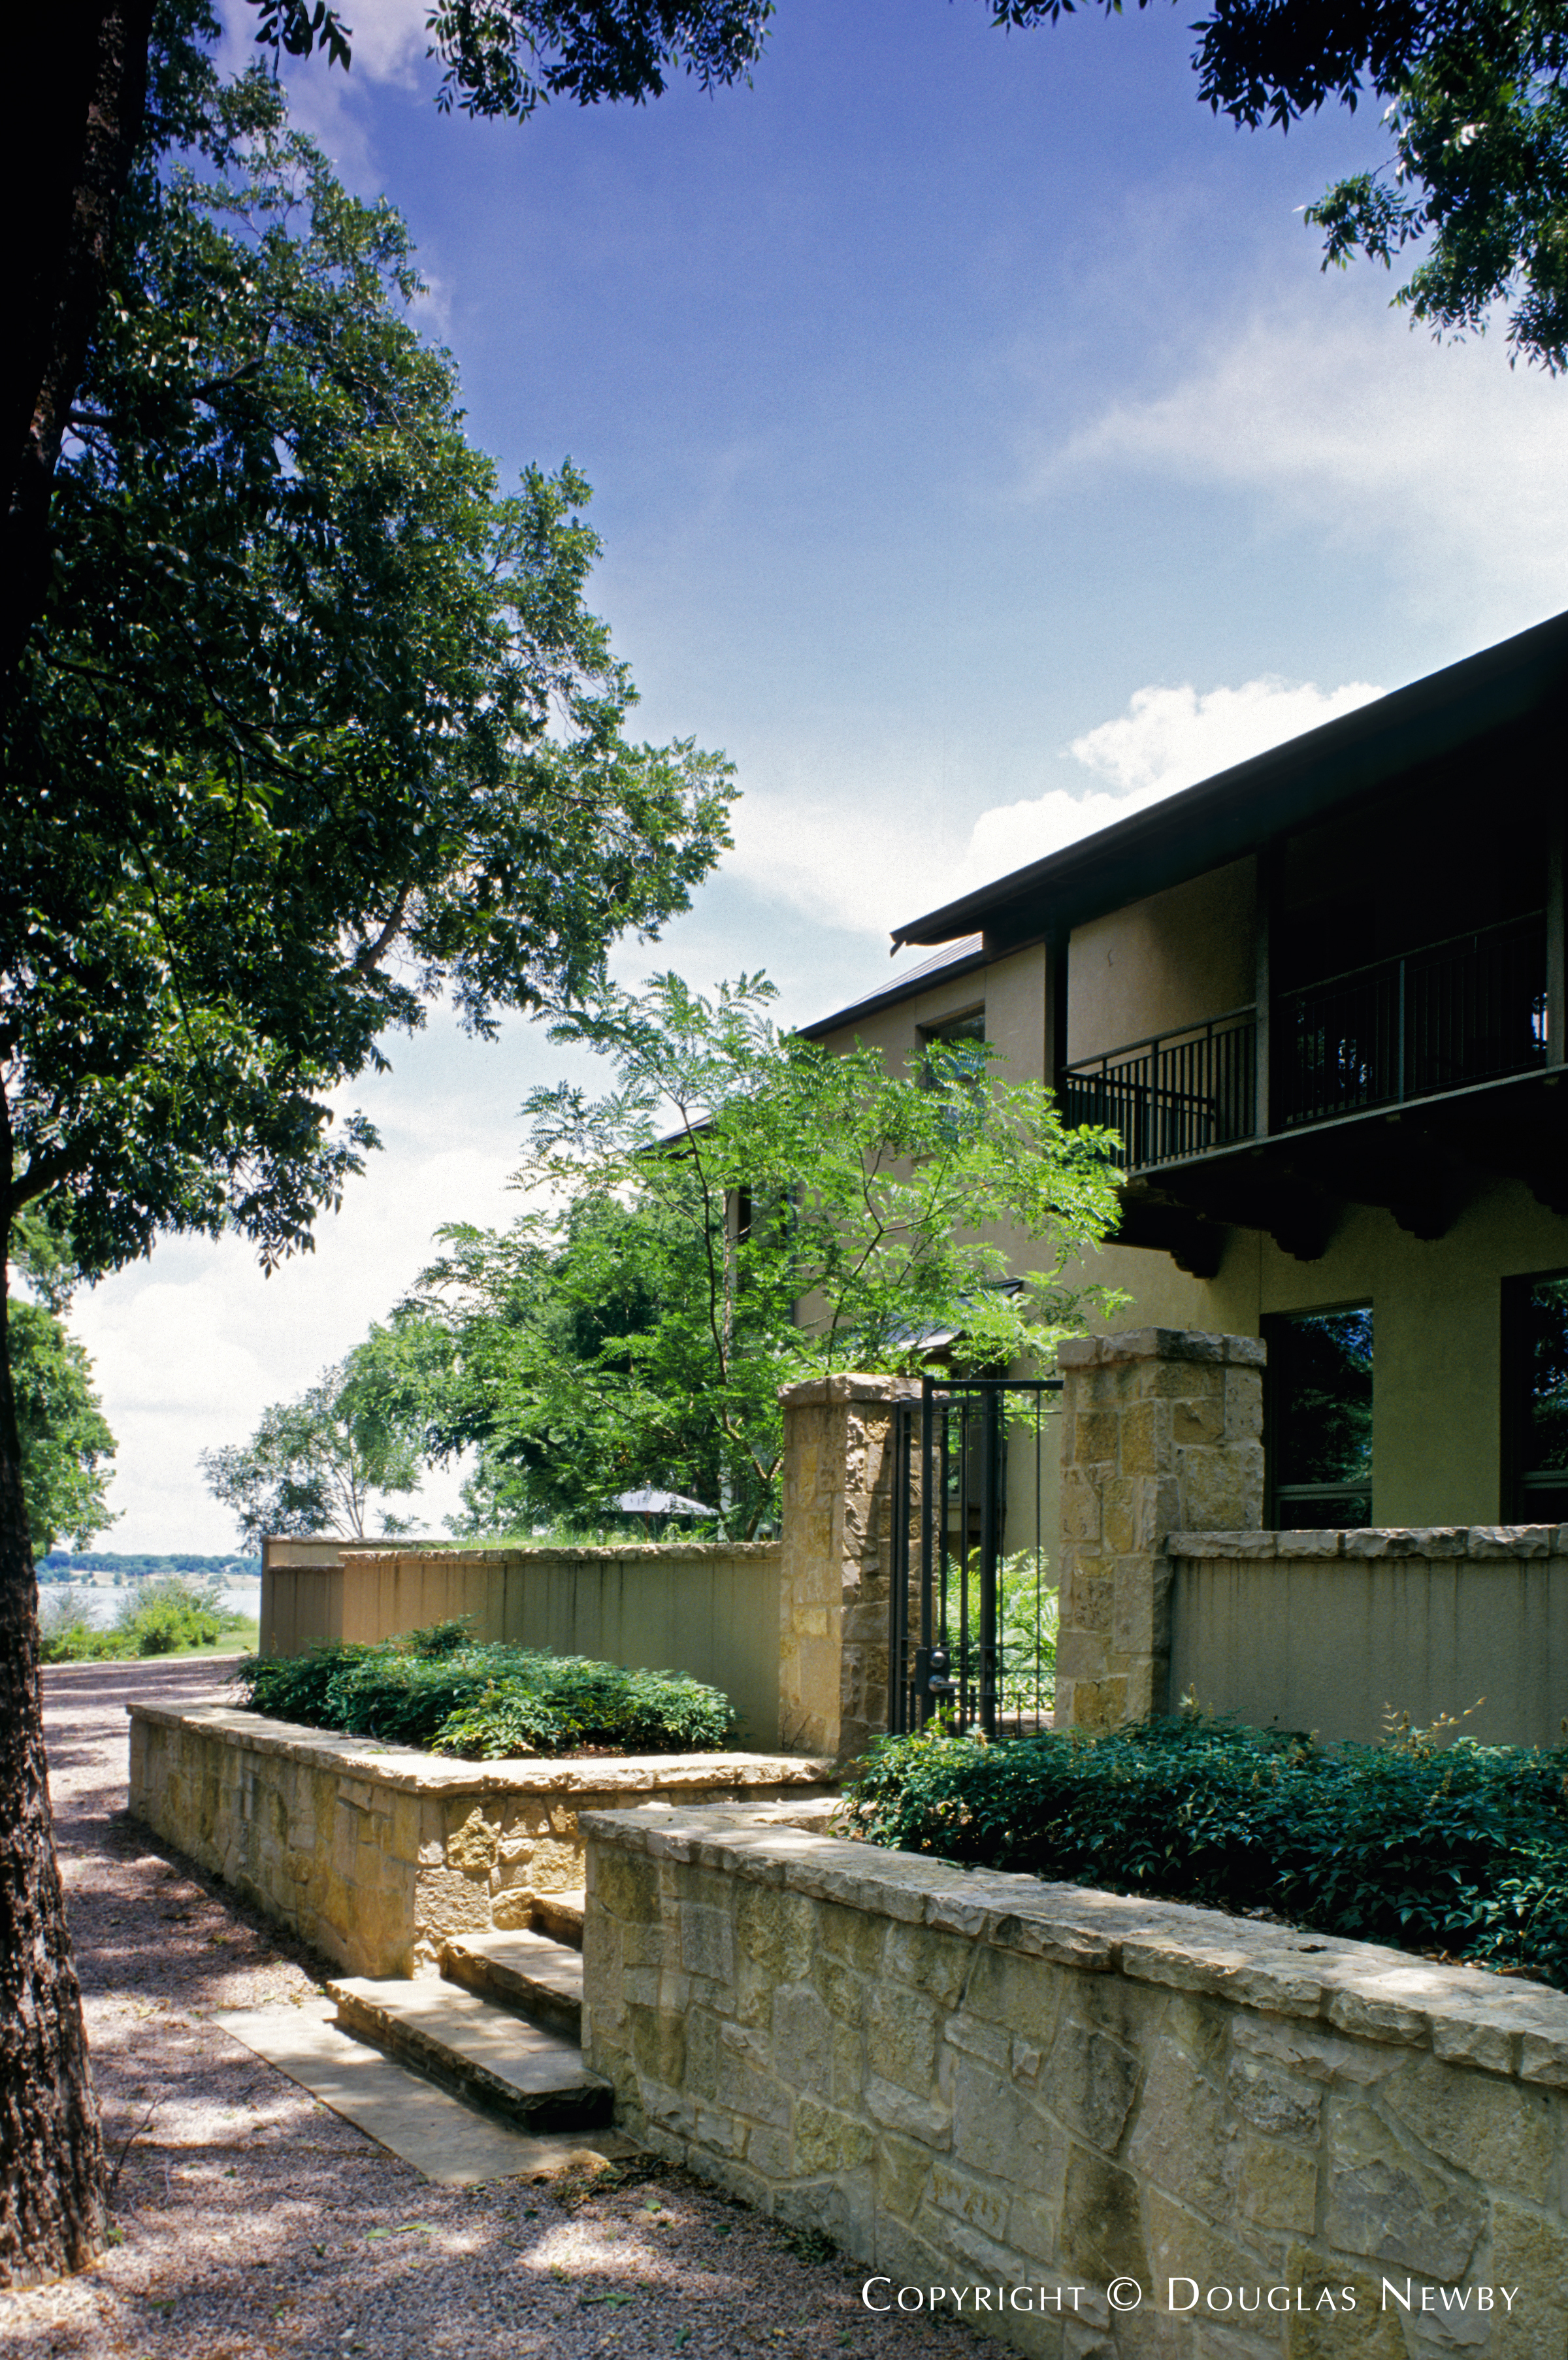 Architect Frank Welch Designed Home in White Rock Lake